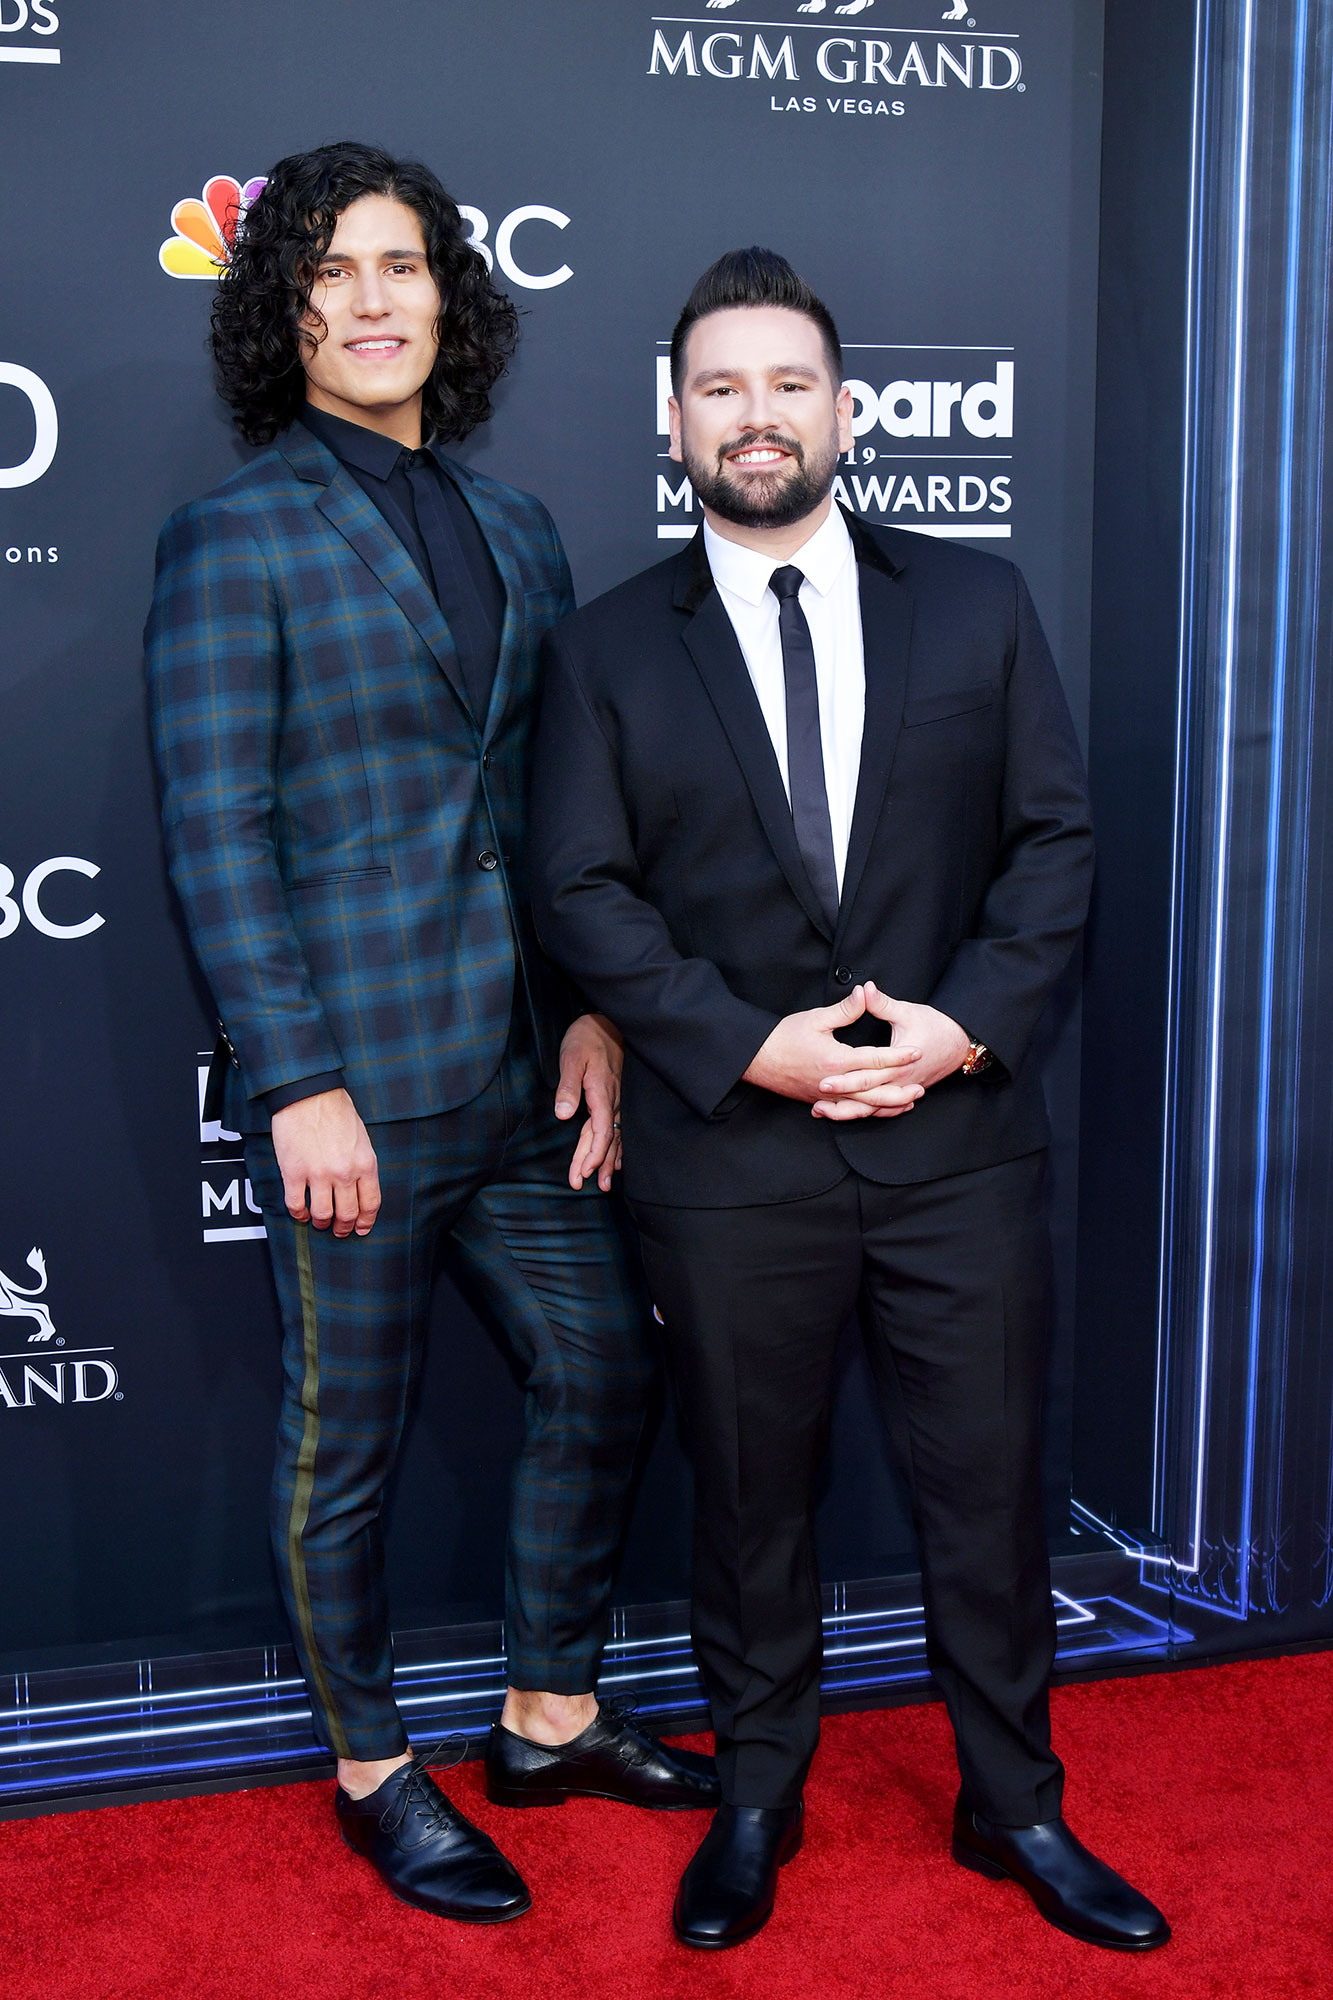 See the Hottest Couples at the BBMAs Dan Reynolds and Shay Mooney of Dan + Shay - The Dan + Shay duo showed off their suit style in plaid and black respectively.